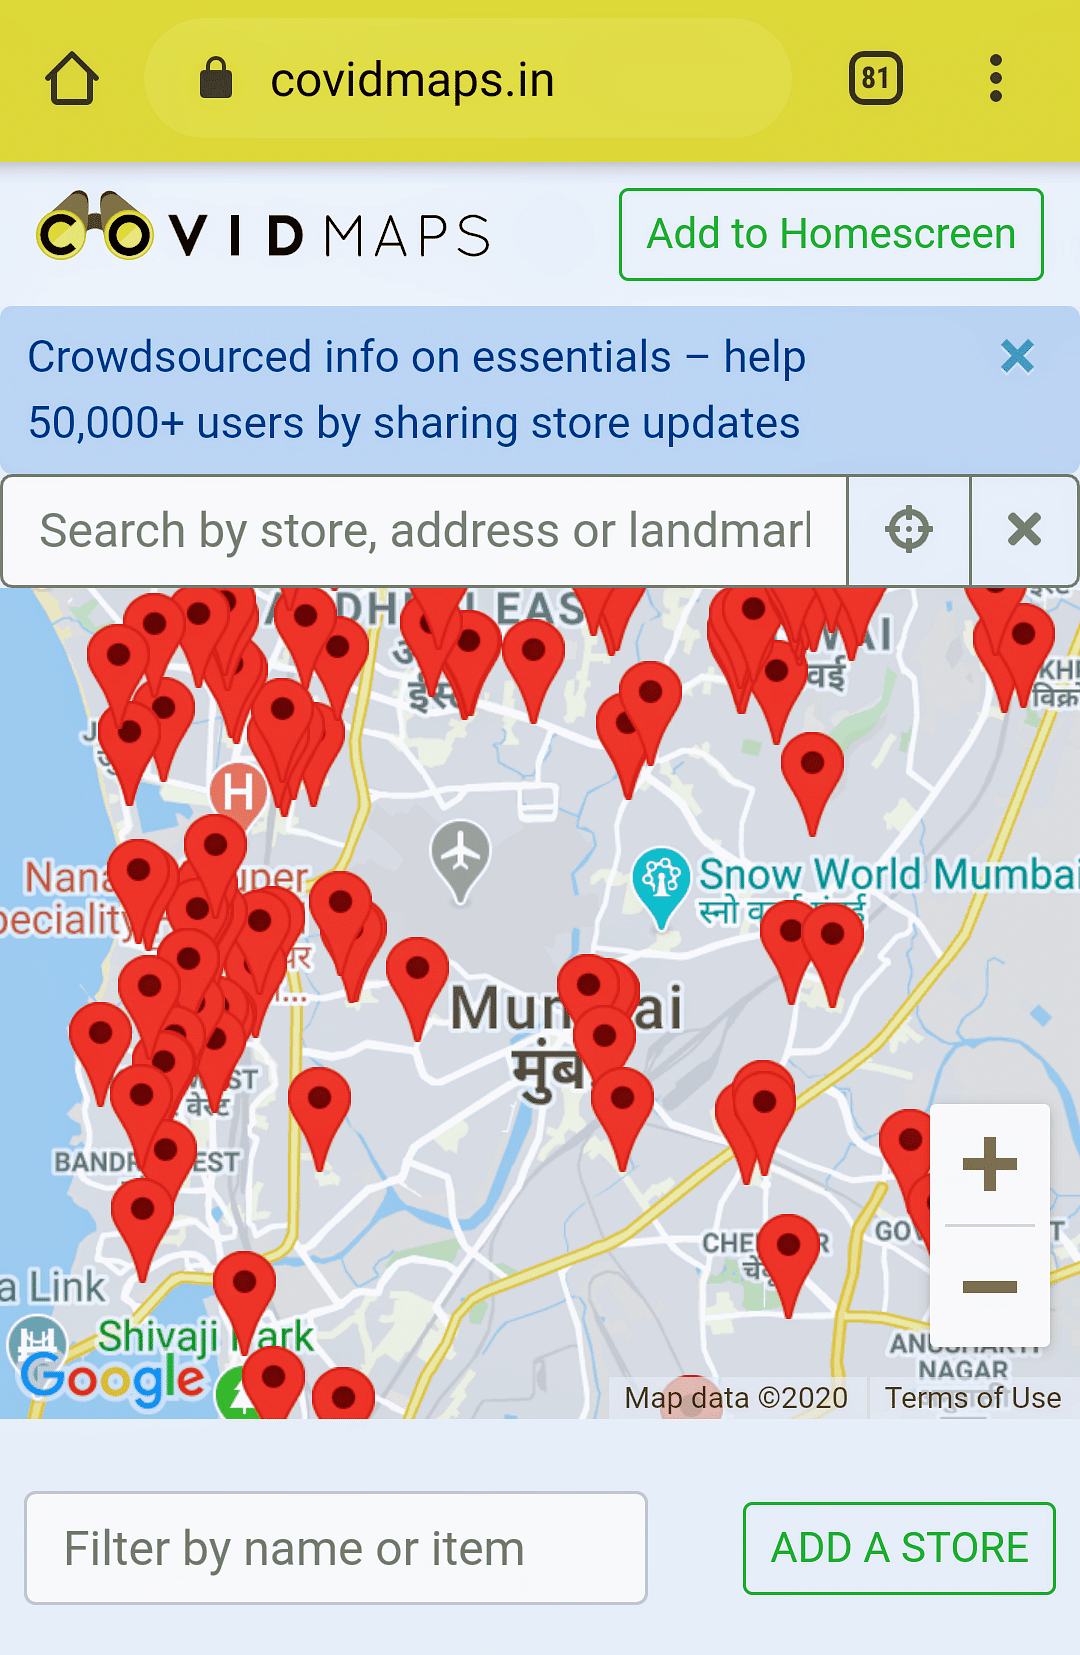 Struggling to buy groceries in Mumbai, Chennai, Bangalore? Covidmaps.in to help locate shops nearby